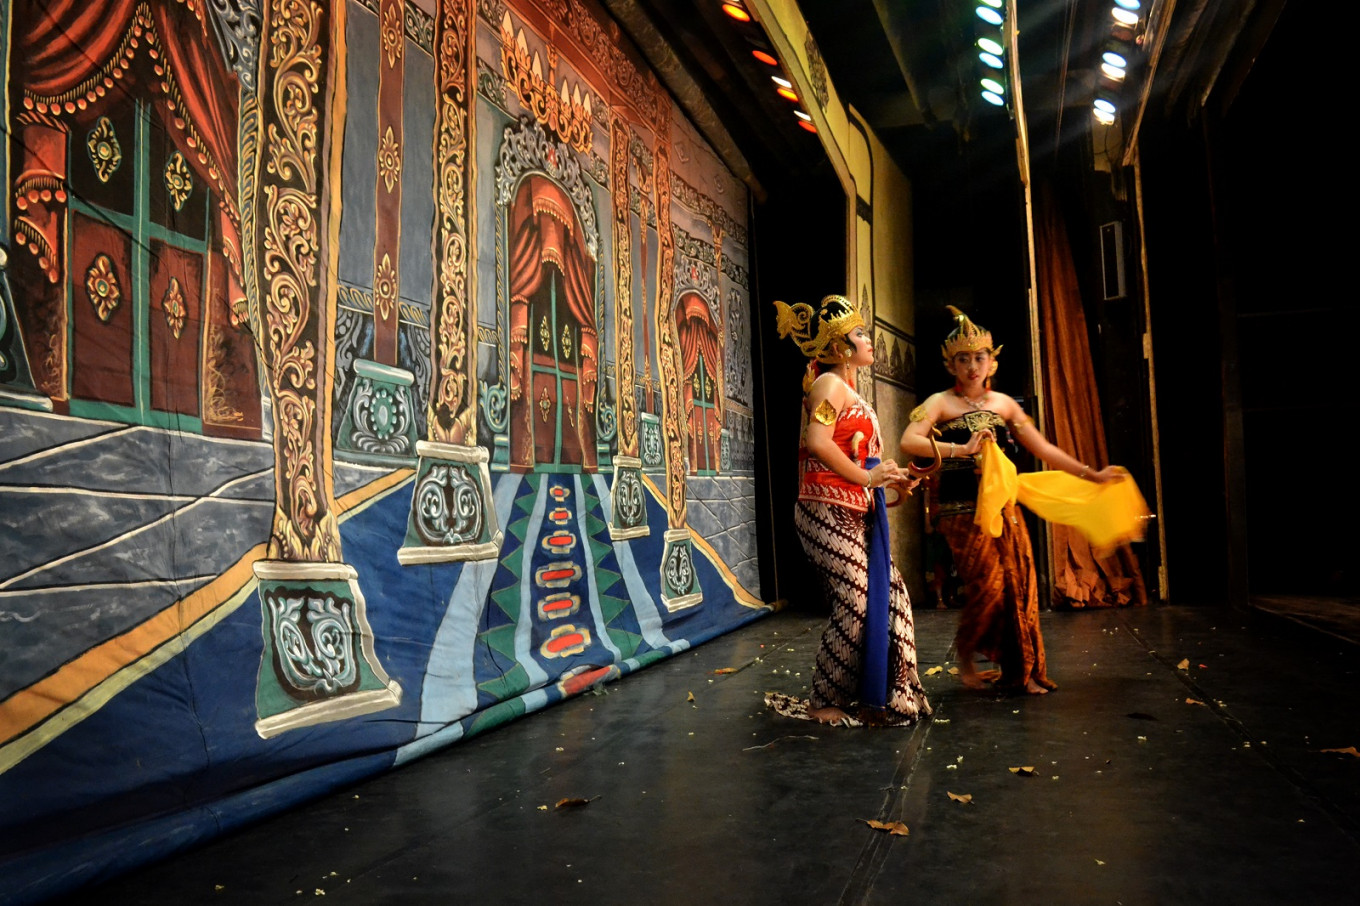 SMPN 4 Surakarta students perform excerpts from the Mahabharata and Ramayana epics in a 'wayang orang' performance.